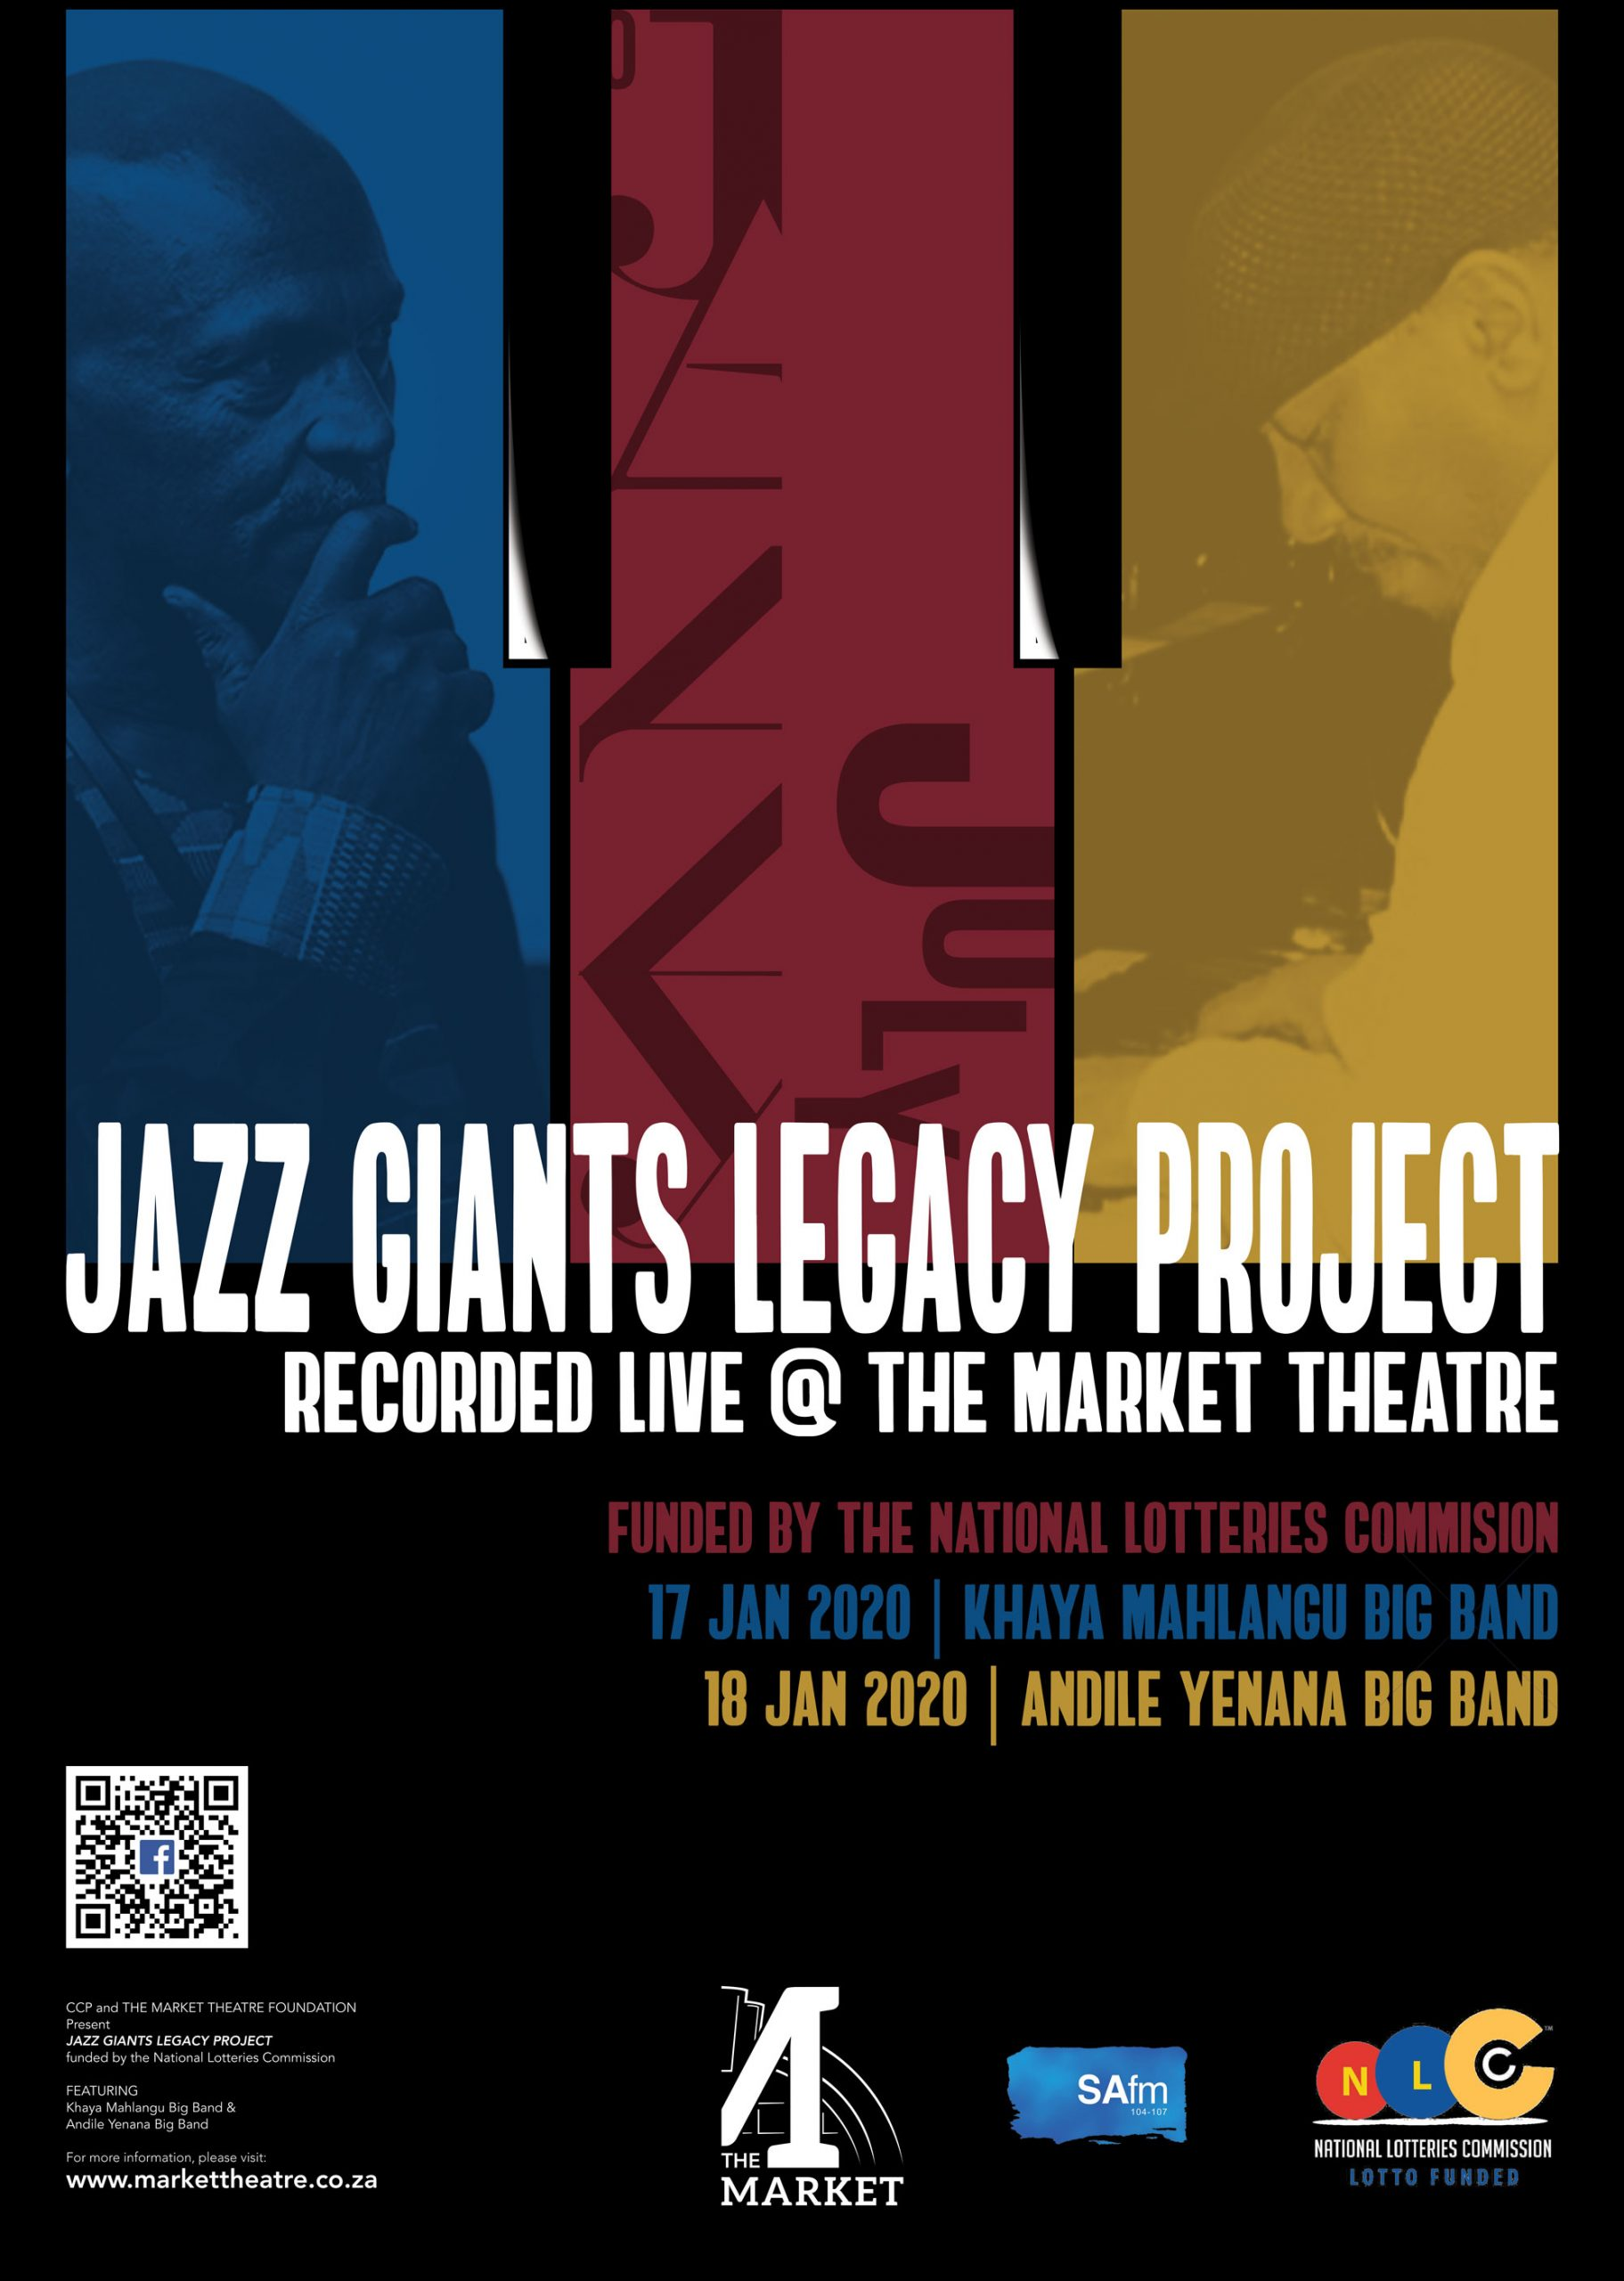 jazz-giants-legacy-project-poster-draft-2.2